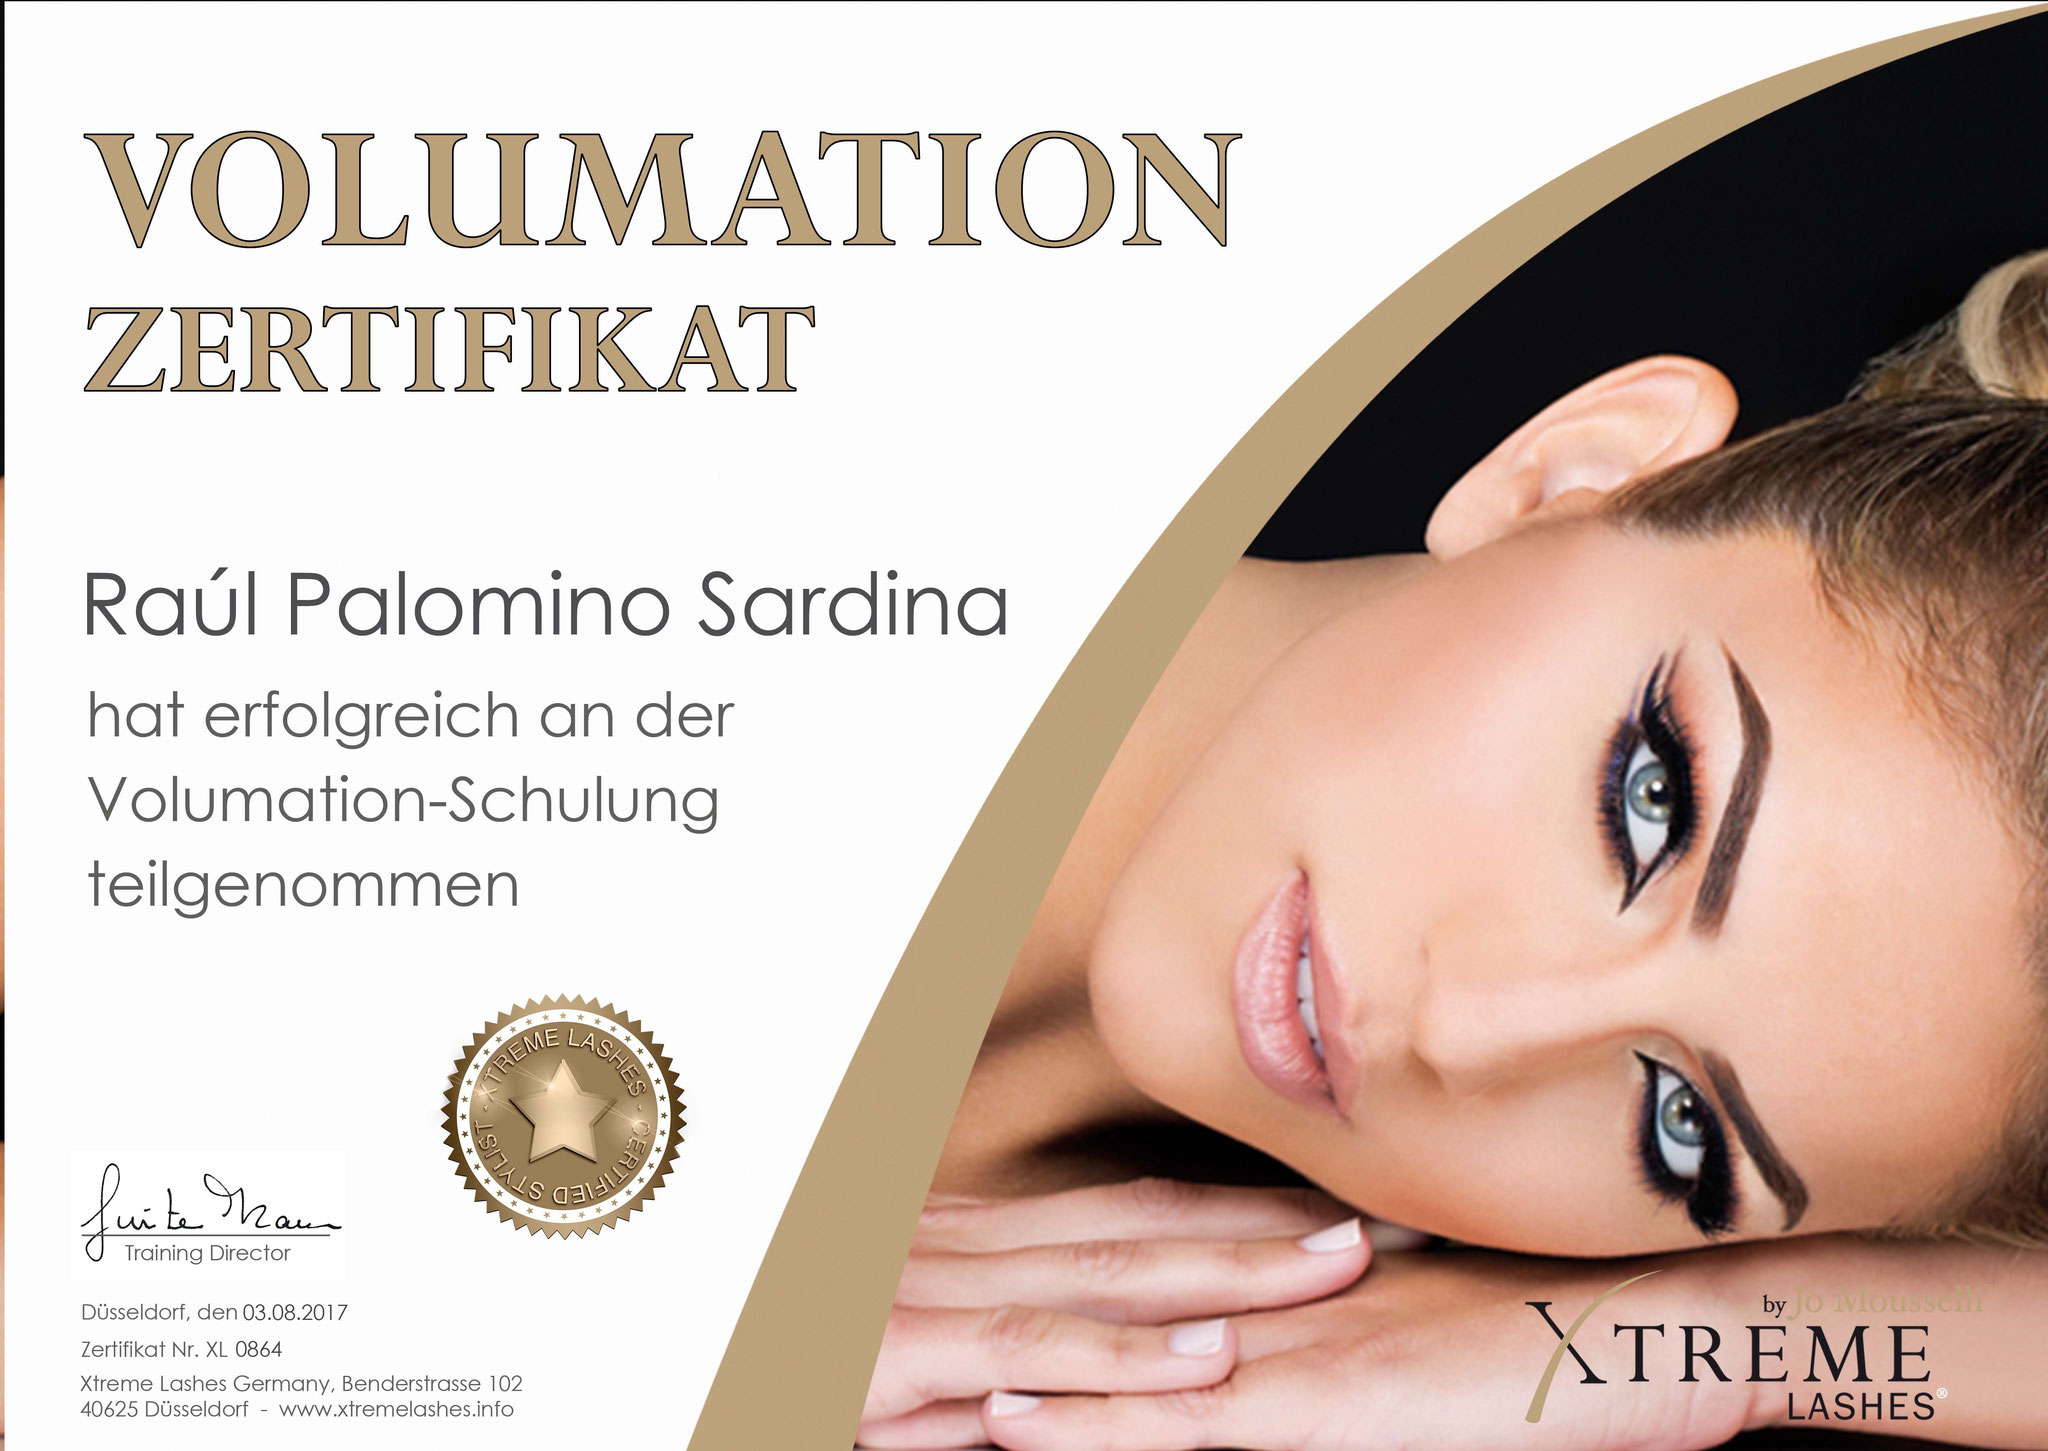 Xtreme Lashes® Zertifikat Volumation-Schulung